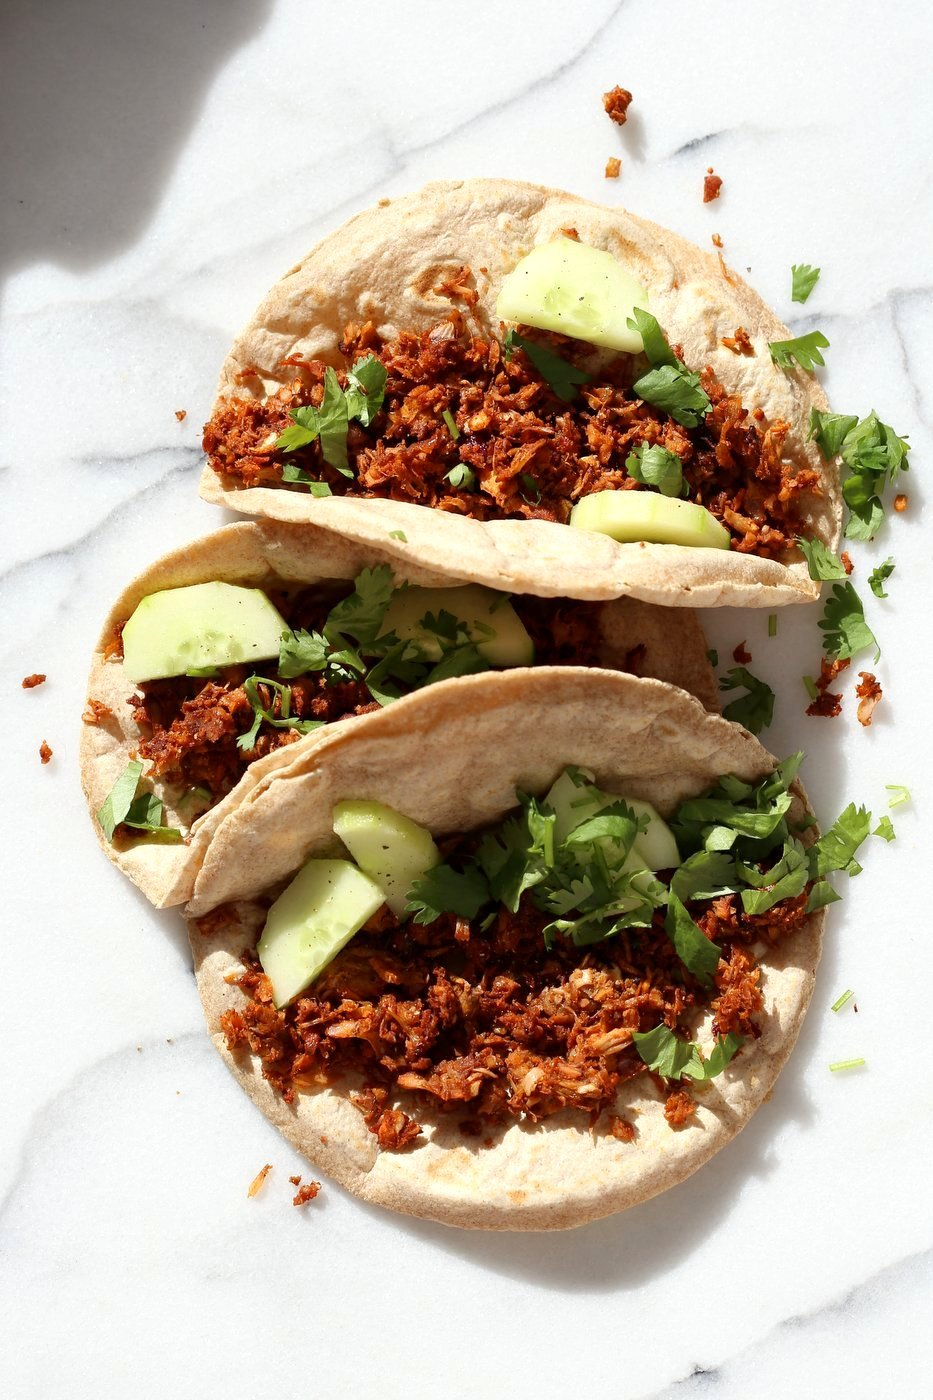 Berbere Spiced Jackfruit Tacos. Jackfruit and onion mixed with Berbere spice blend and baked to caramelized spiced perfection. Add some chickpeas to make into a hearty meal. Vegan Soy-free Nut-free Recipe, Can be Glutenfree | VeganRicha.com